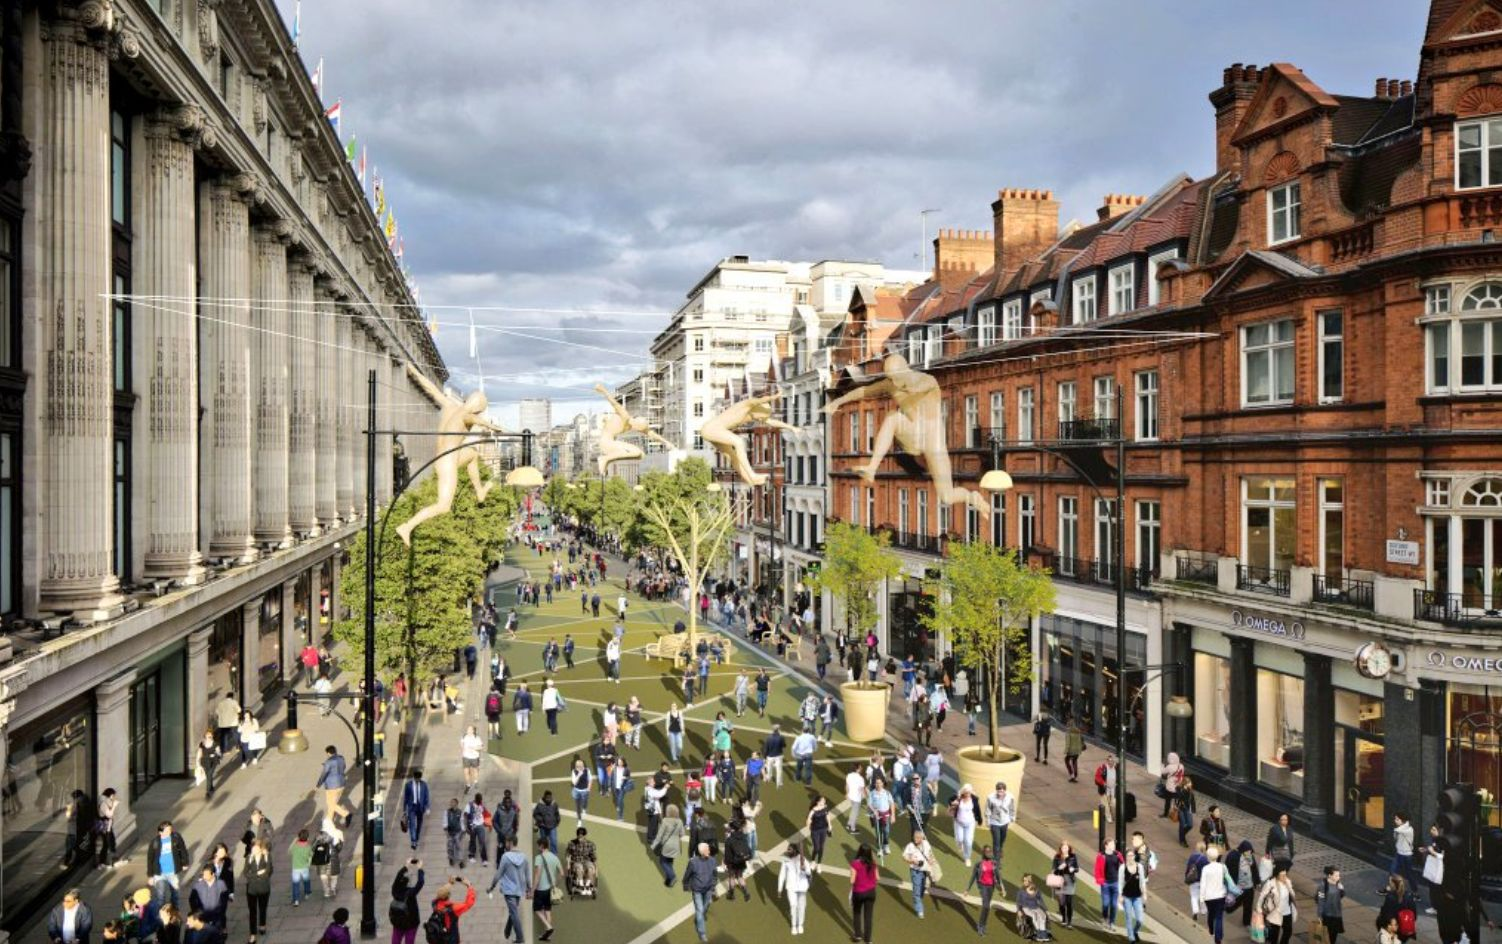 <strong>Large parts of London's Oxford Street could be pedestrianised by 2018</strong>